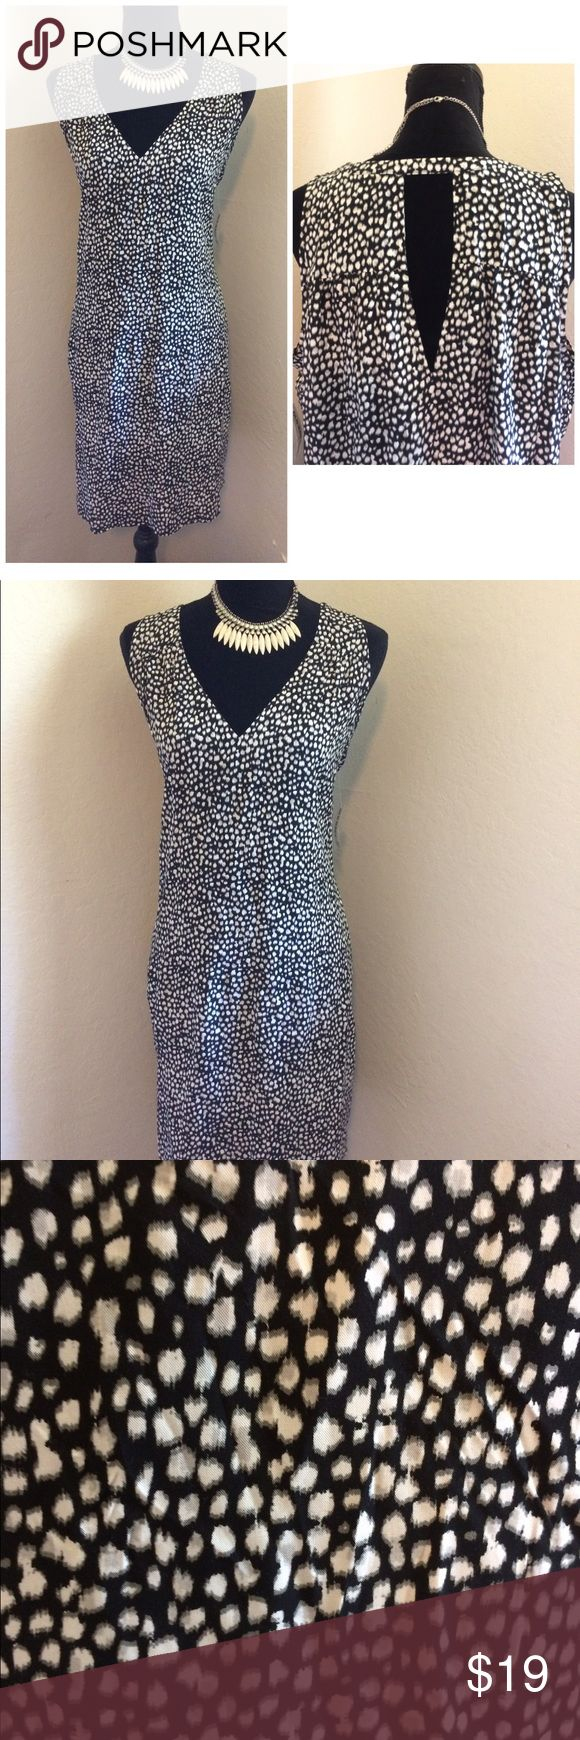 """NWT Old Navy V Neck Print Keyhole Detail Dress Interested in a lightweight and chic summer dress? This NWT Old Navy black/gray/white (animal print inspired) sleeveless dress with keyhole detail on the back may be perfect for you. The dress also features hi-low hem detail and easy to wear (pullover the head).  *Item Dimensions: Pit to Pit: Approximately 24"""" Length: Approximately 25"""" Interested? ***FREE*** shipping available. We ship M-F. One day handling.Thank you for visiting my closet…"""